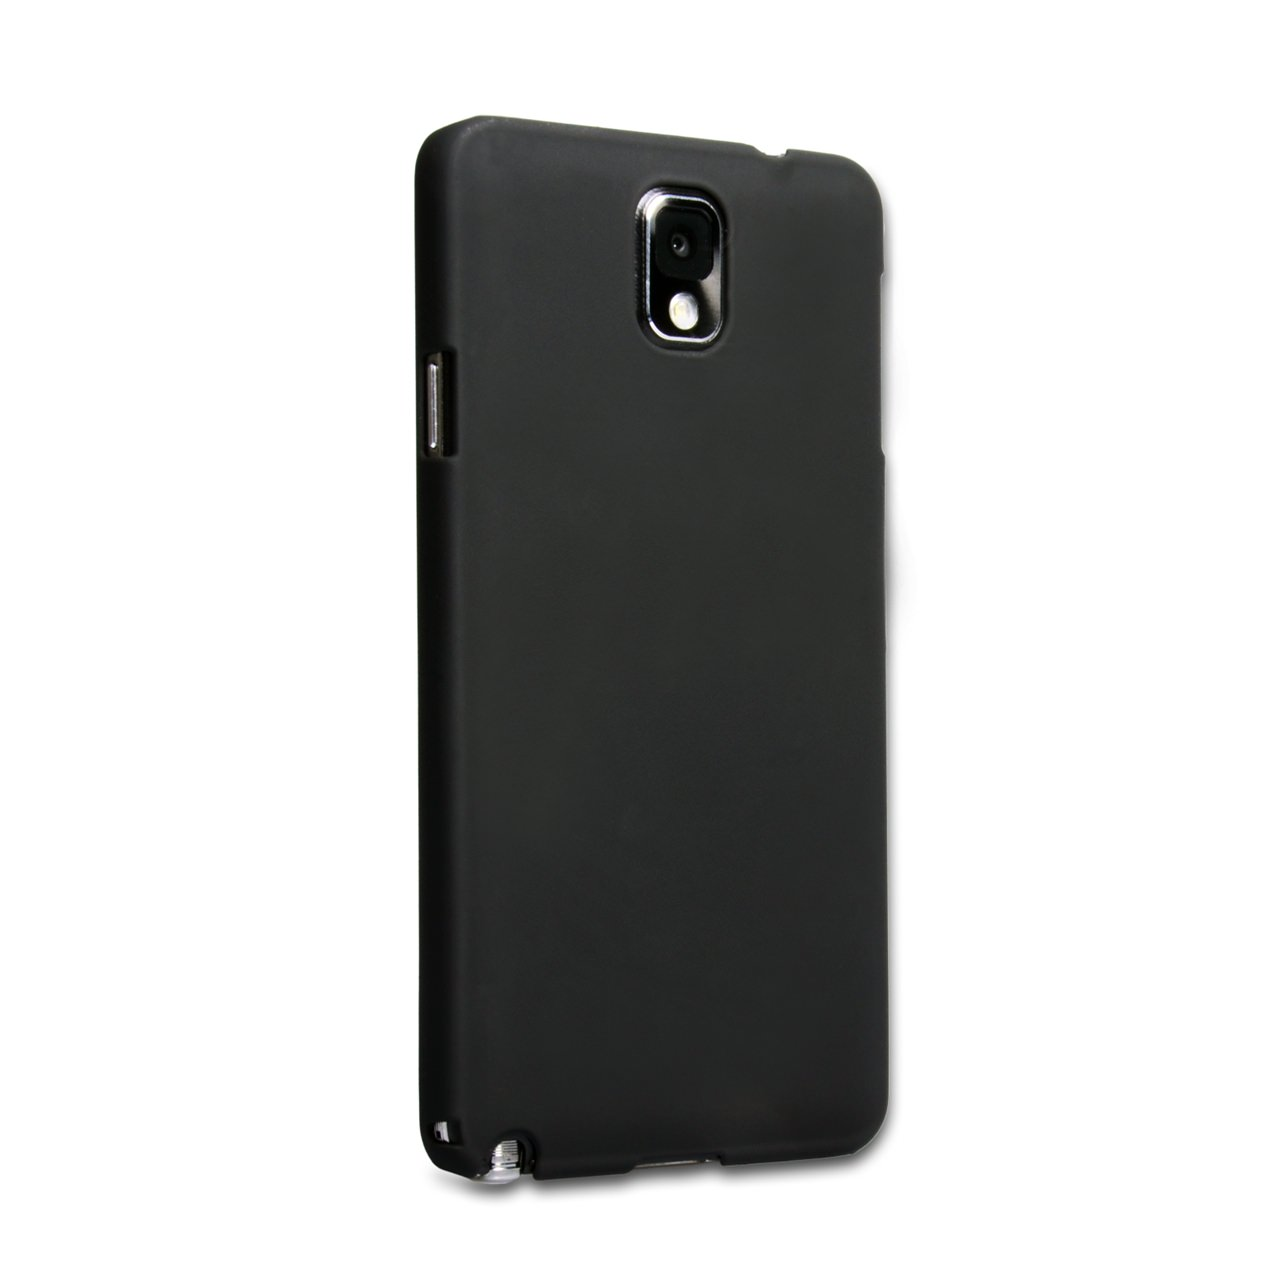 YouSave Accessories Samsung Galaxy Note 3 Gel Case - Black